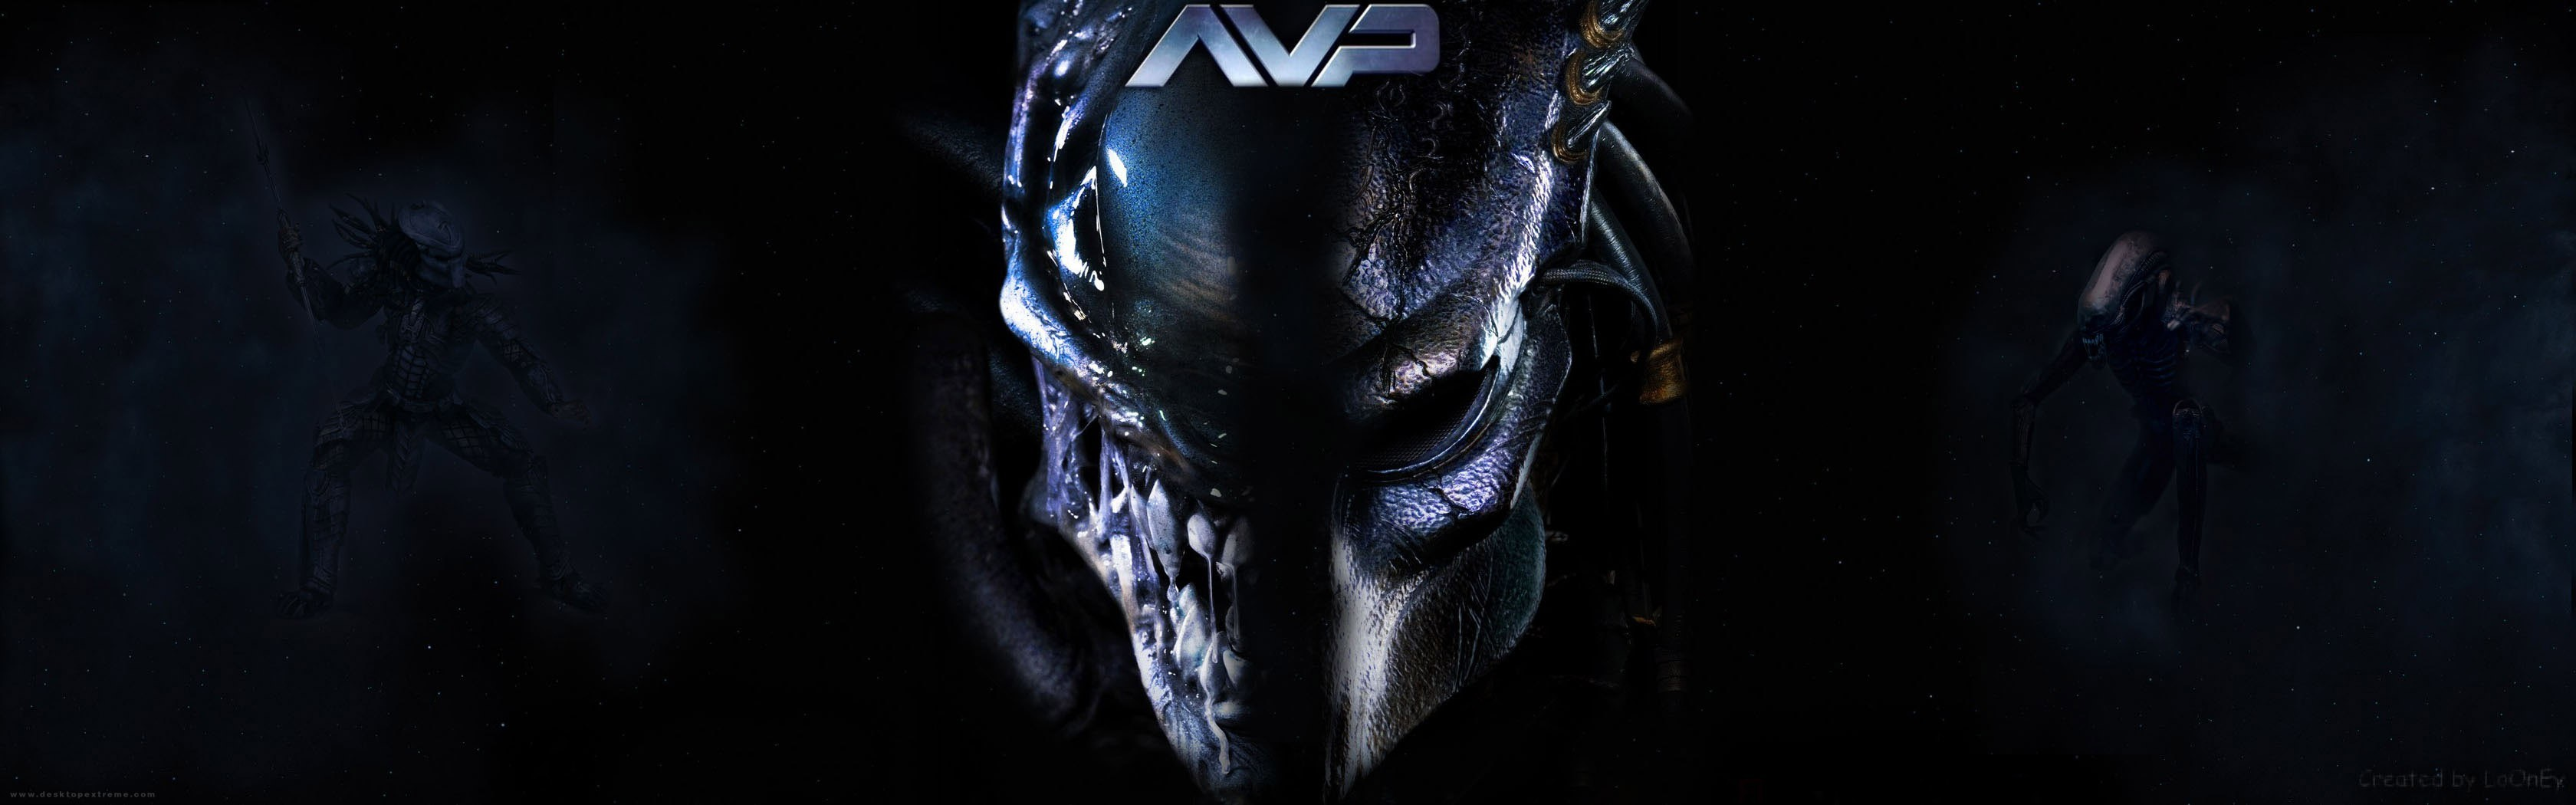 Movies predator Aliens vs HD Wallpaper